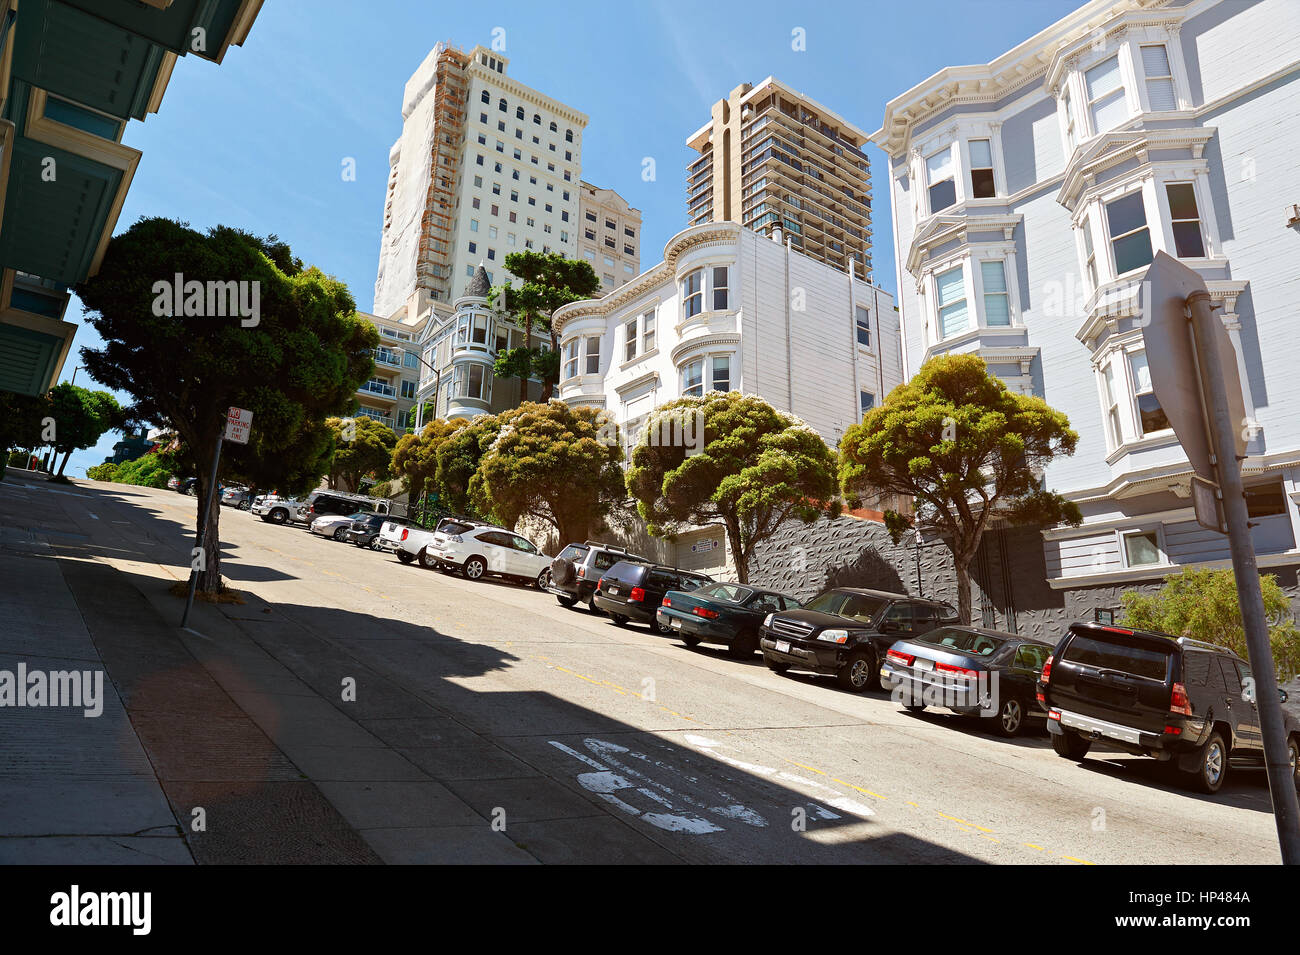 Street in San francisco with road on